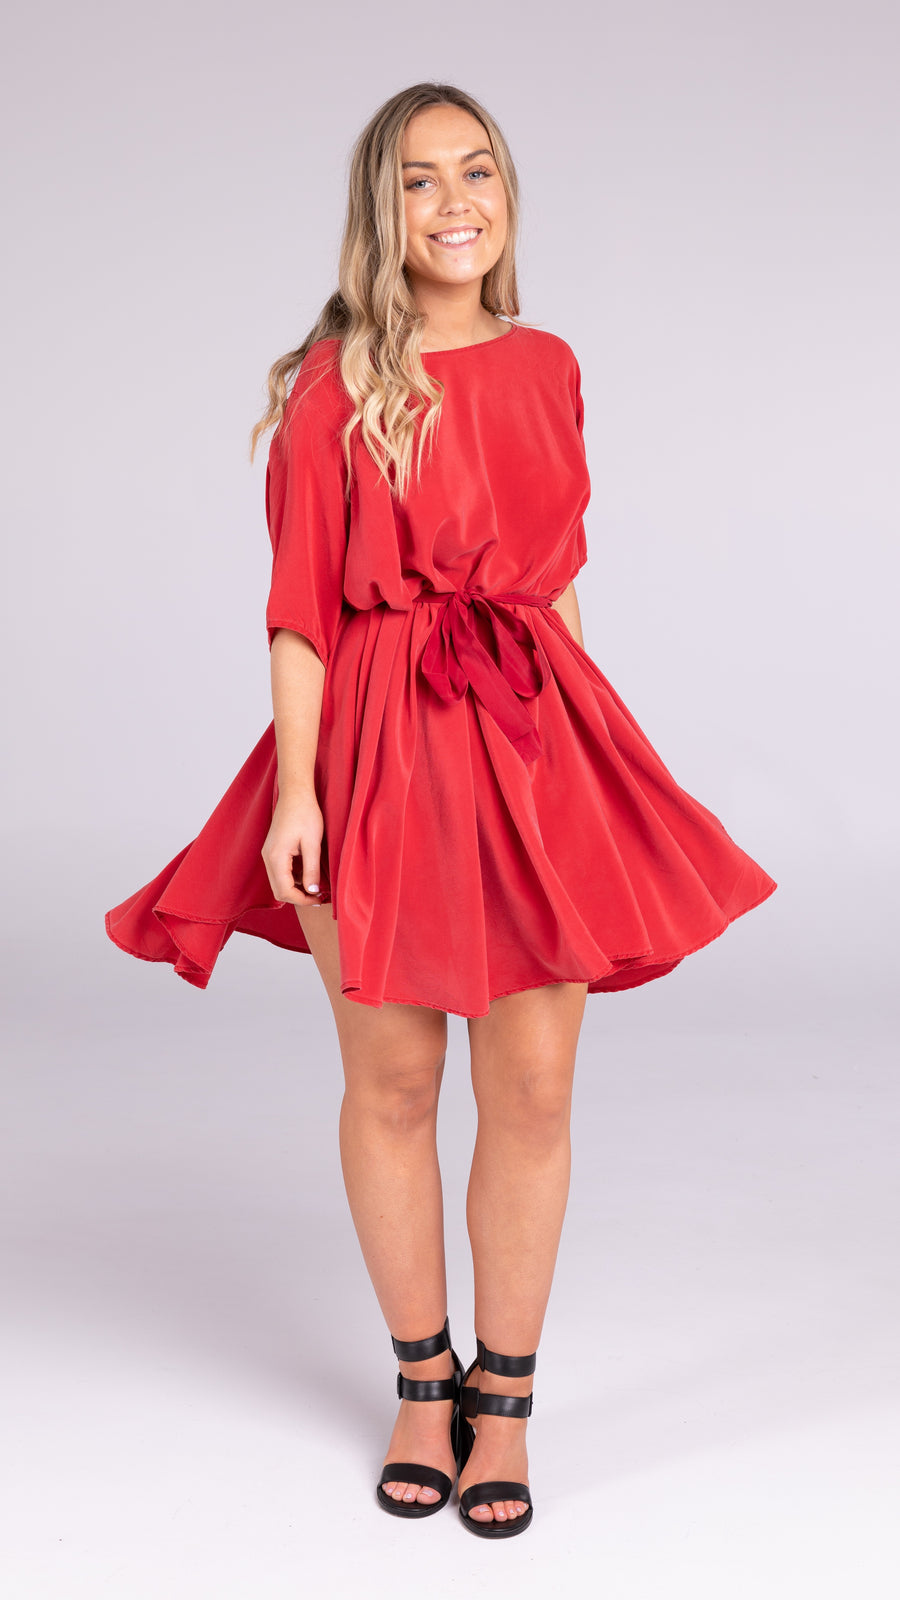 Miss Crabb Rise Dress